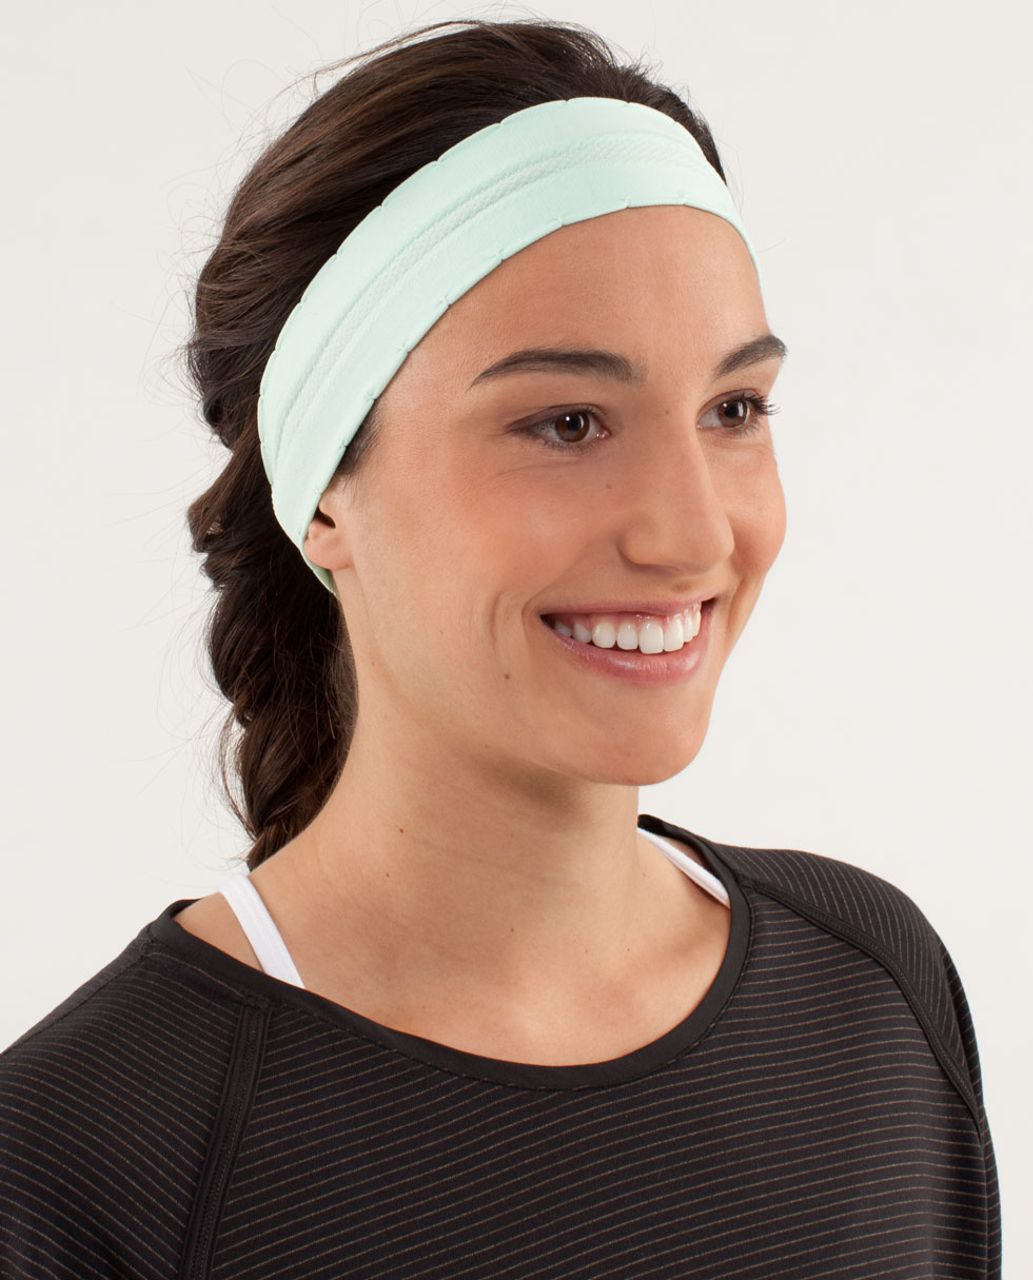 Lululemon Swiftly Headband - Mint Moment - lulu fanatics 2010e46908c